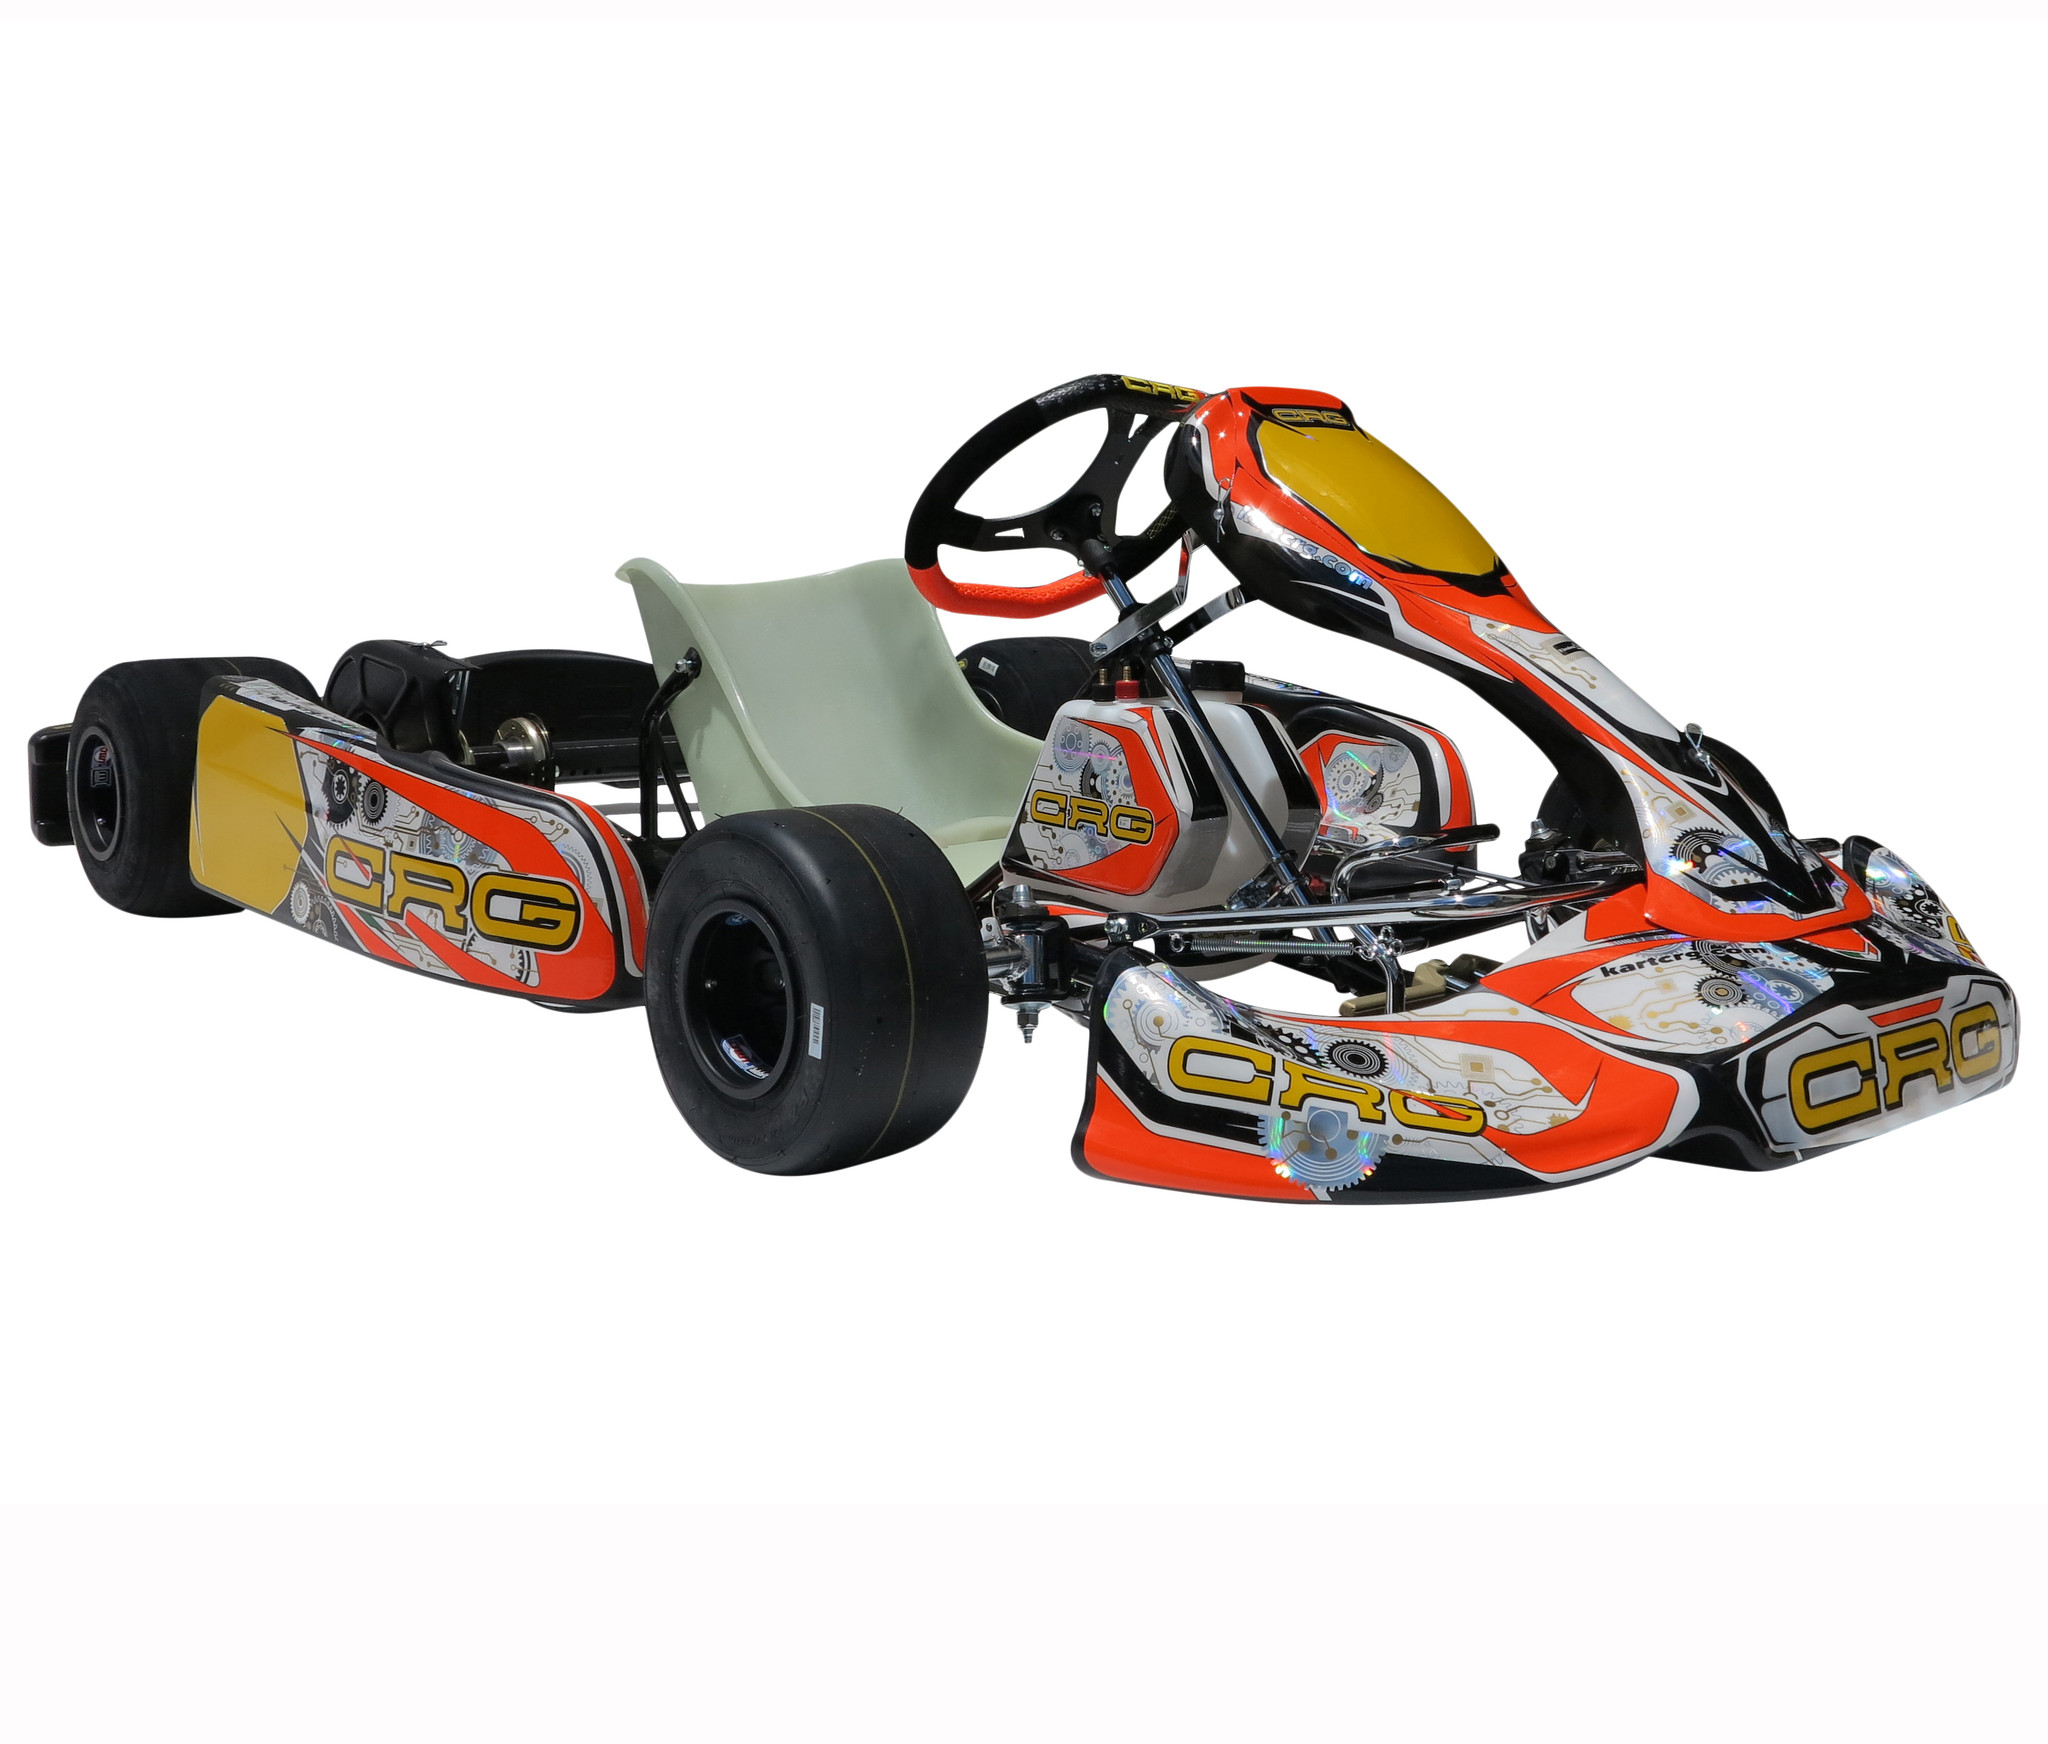 Buy & Sell karts, engines and spares with TKC - Rotax Max Karts